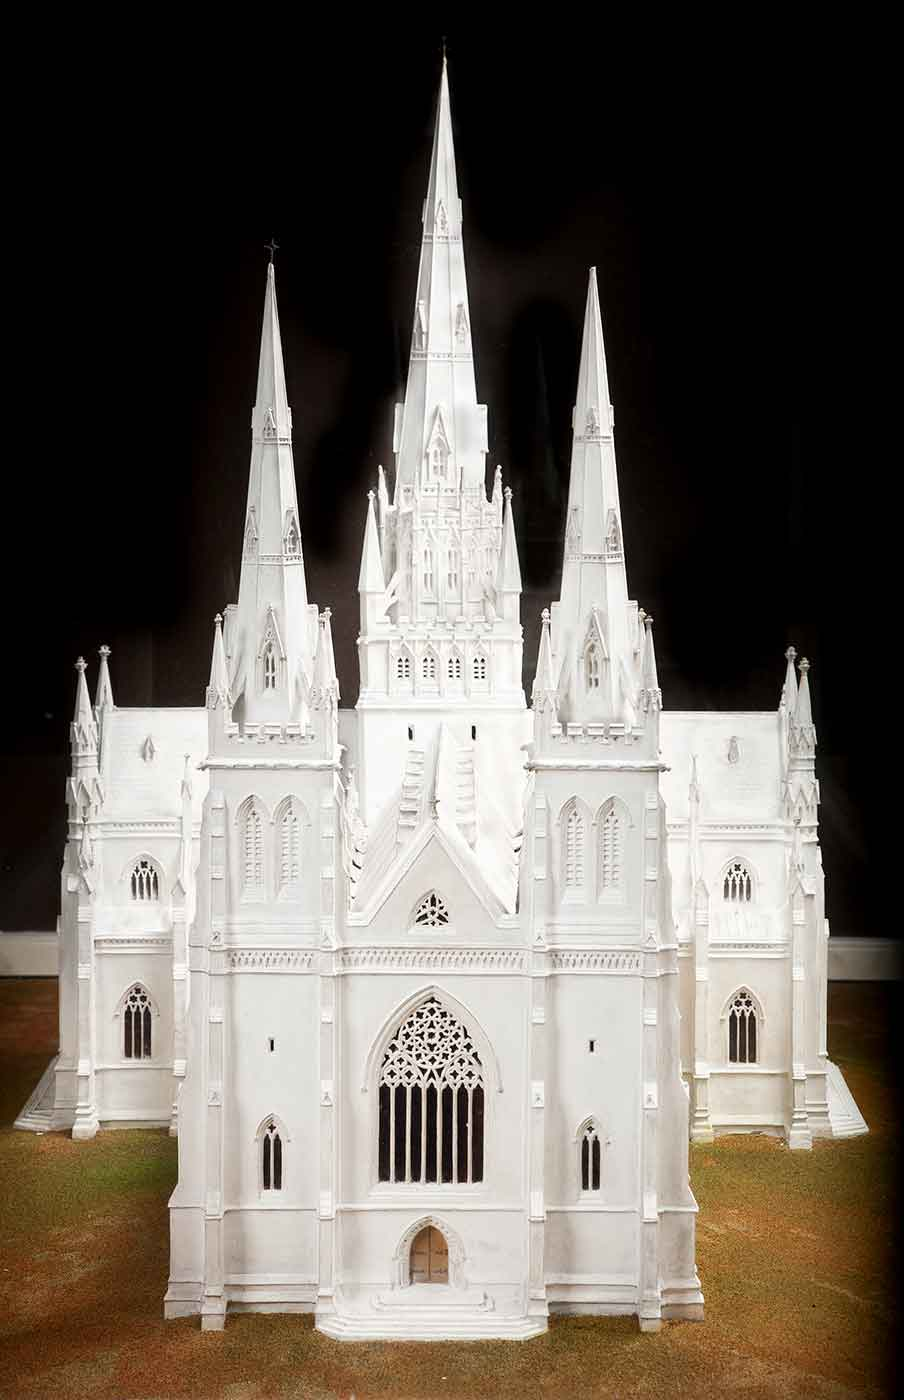 Model of a cathedral.